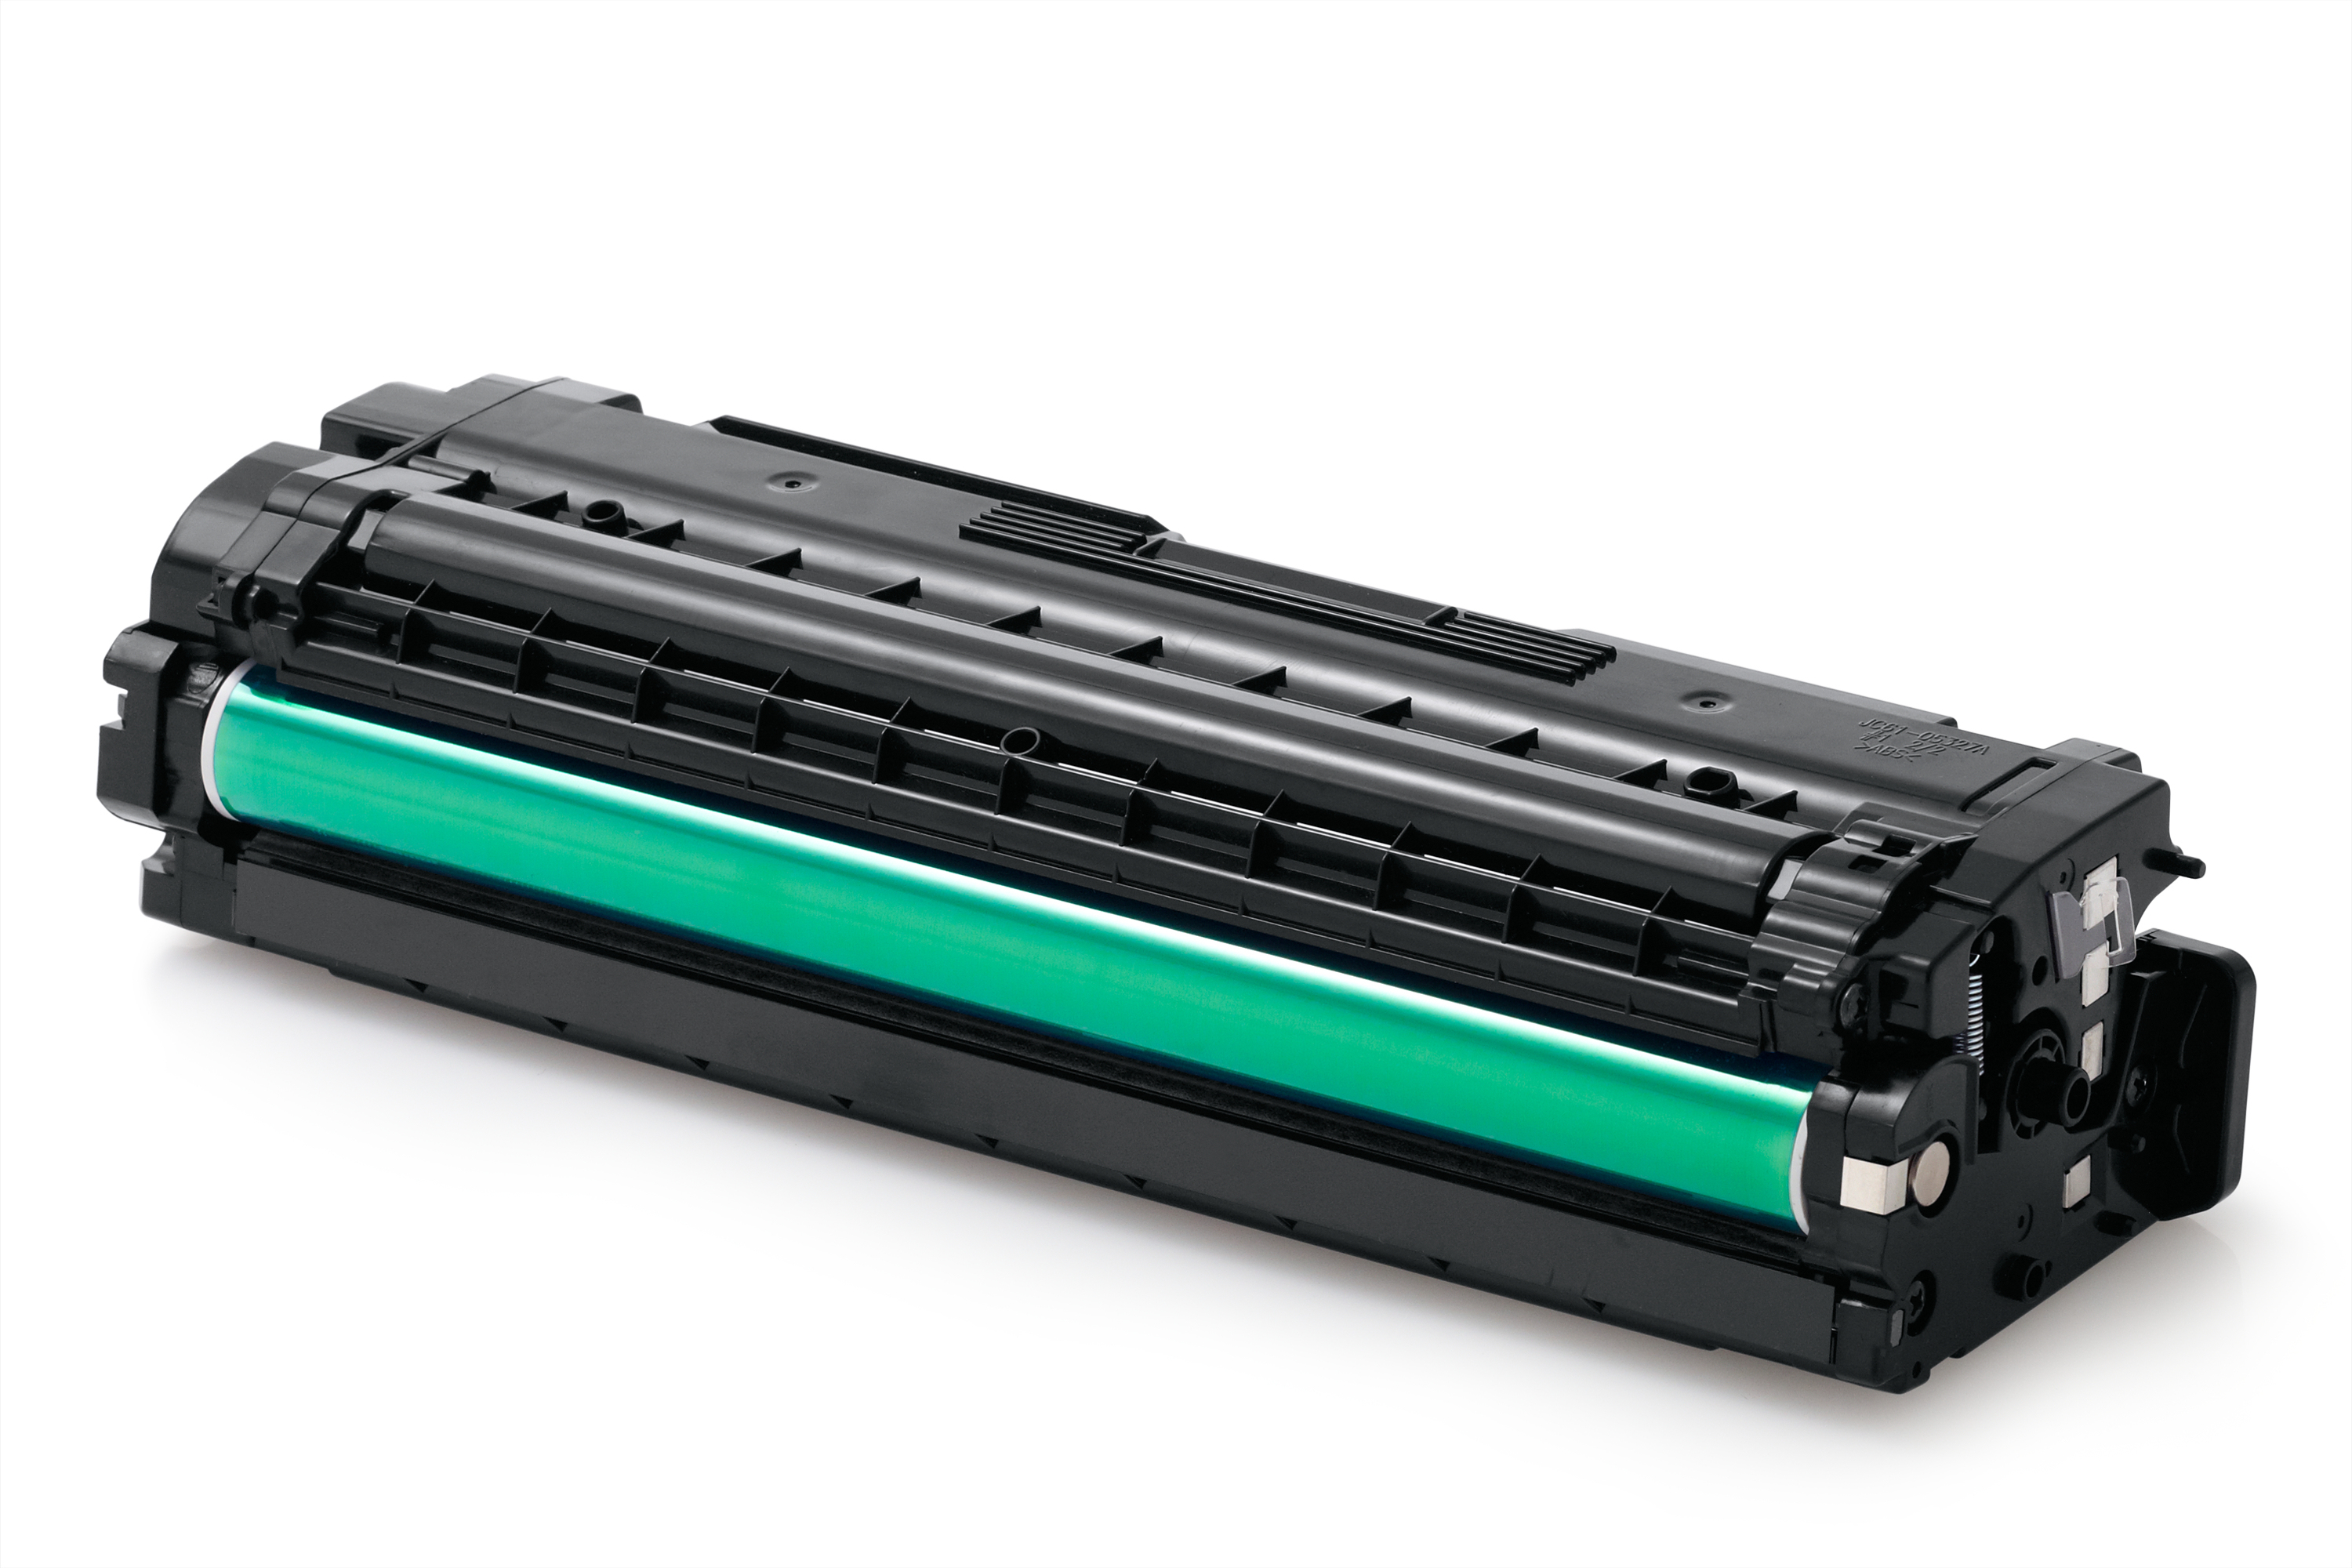 Remanufactured Samsung CLT-K506L Toner Cartridge (6k) CLT-K506S/ELS - rem01